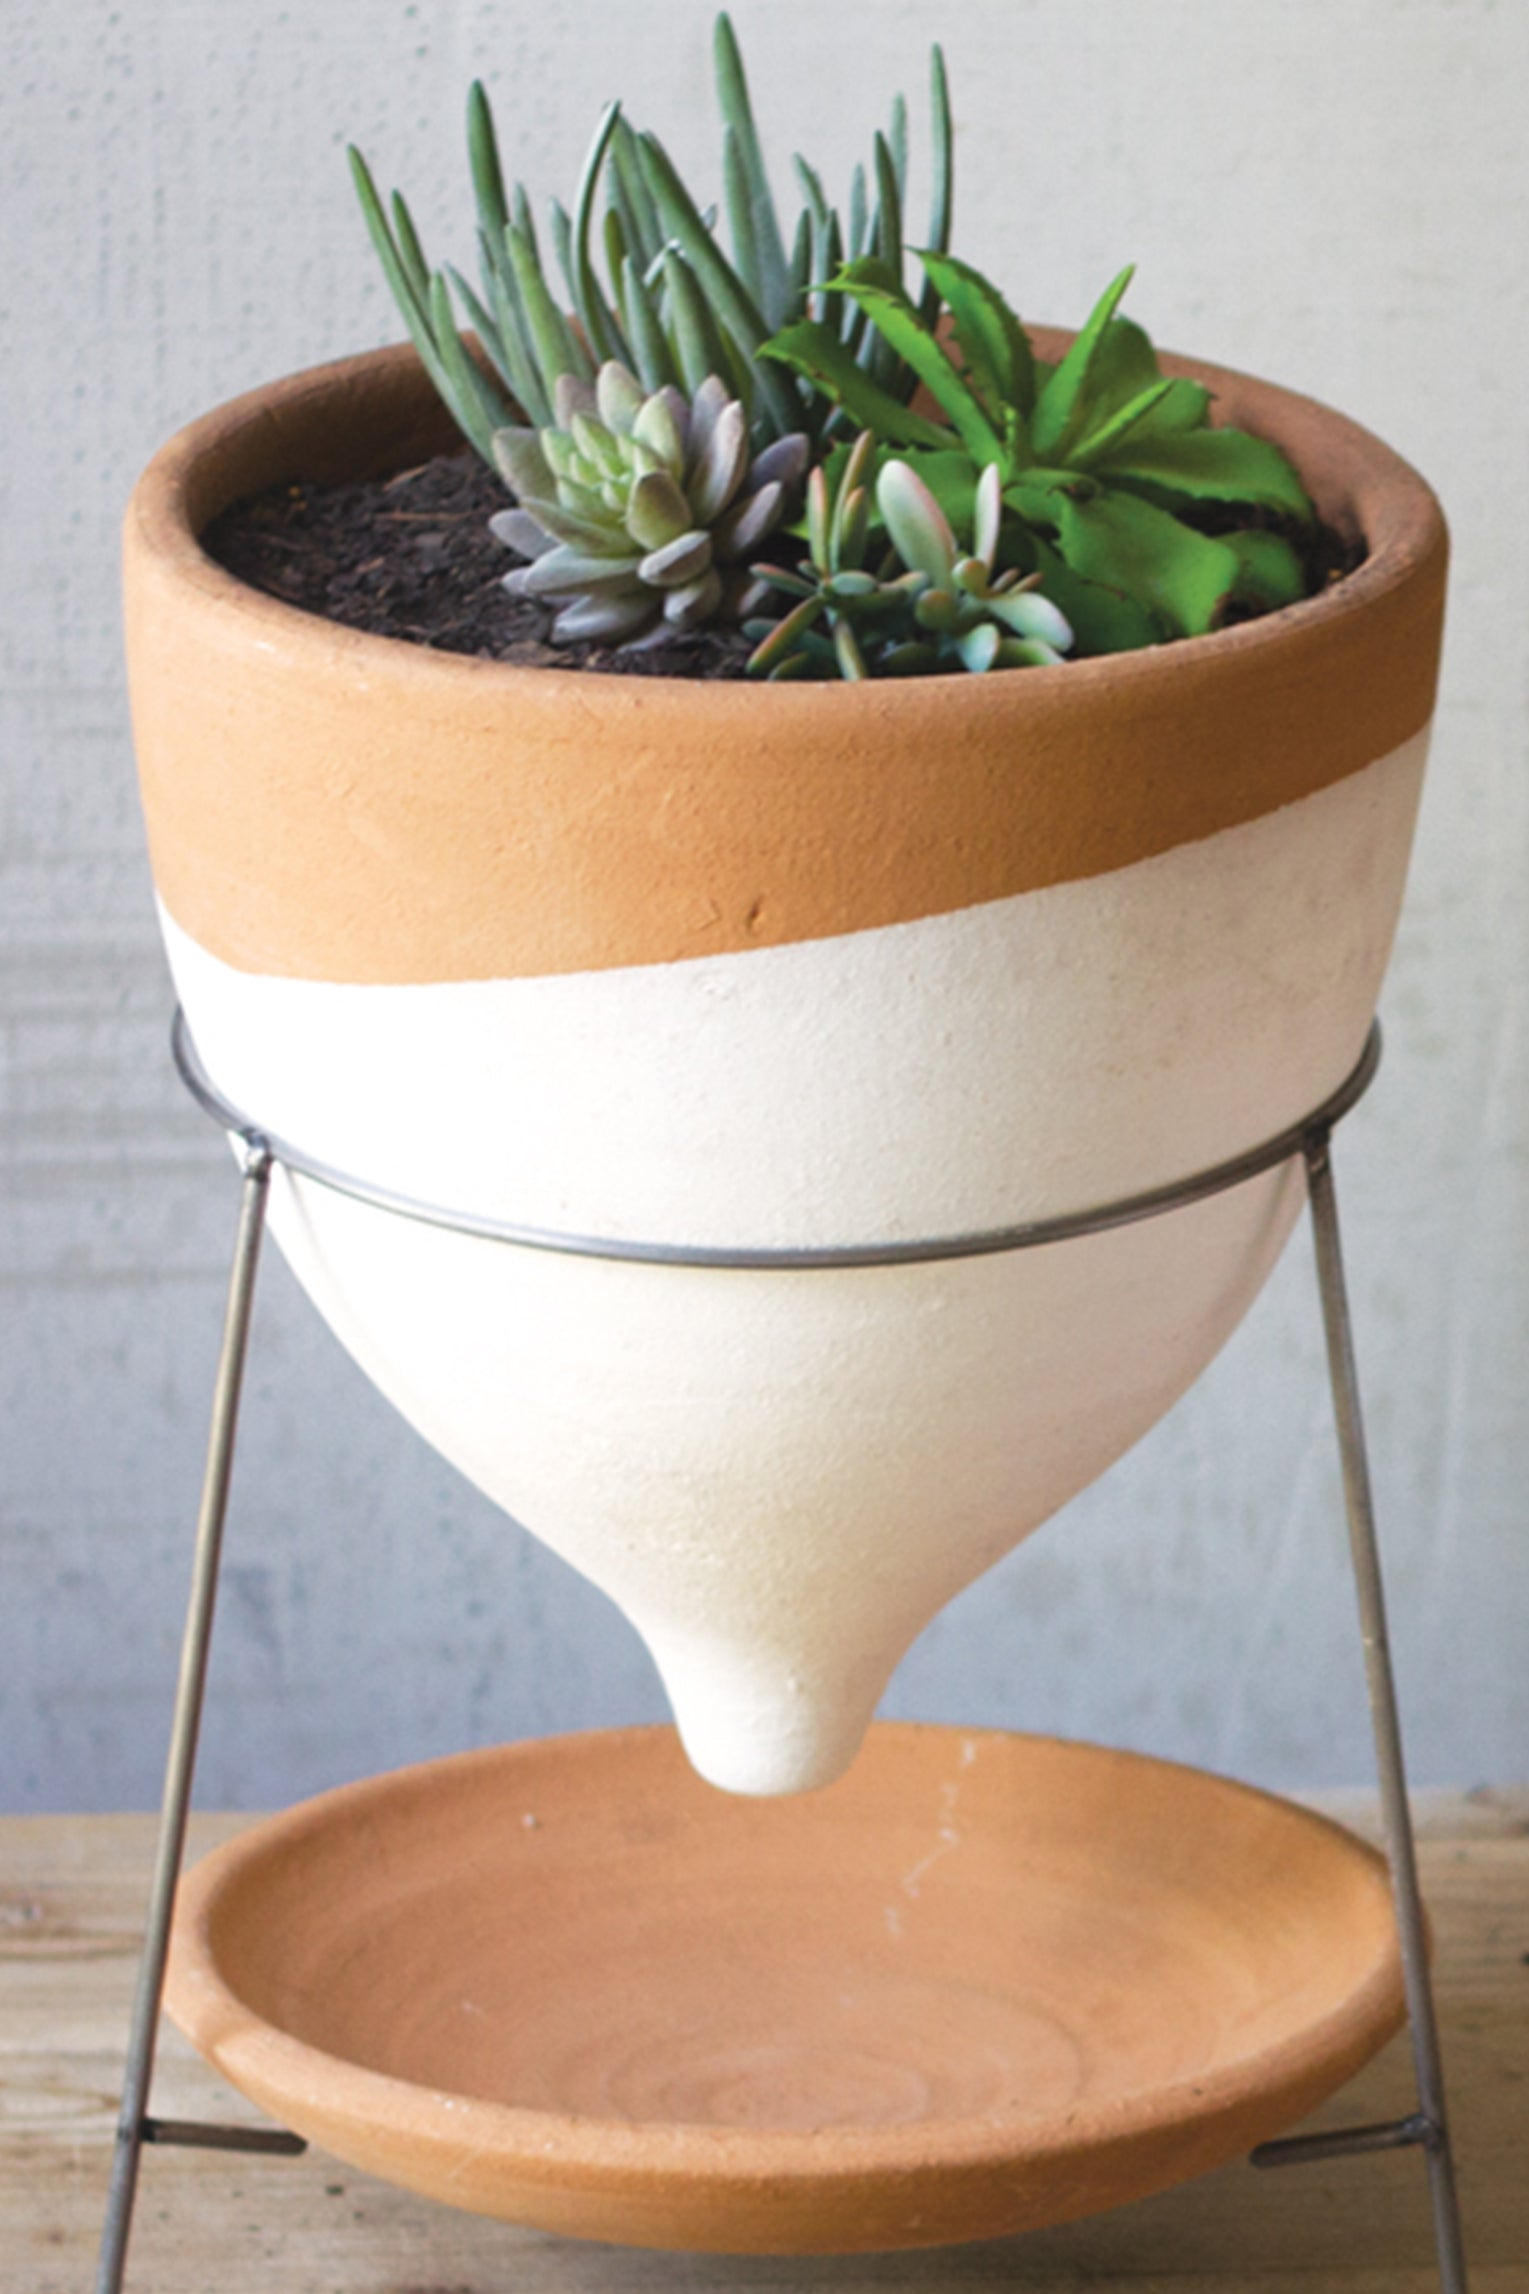 Southwest Terracotta Clay Succulent Planter With Stand